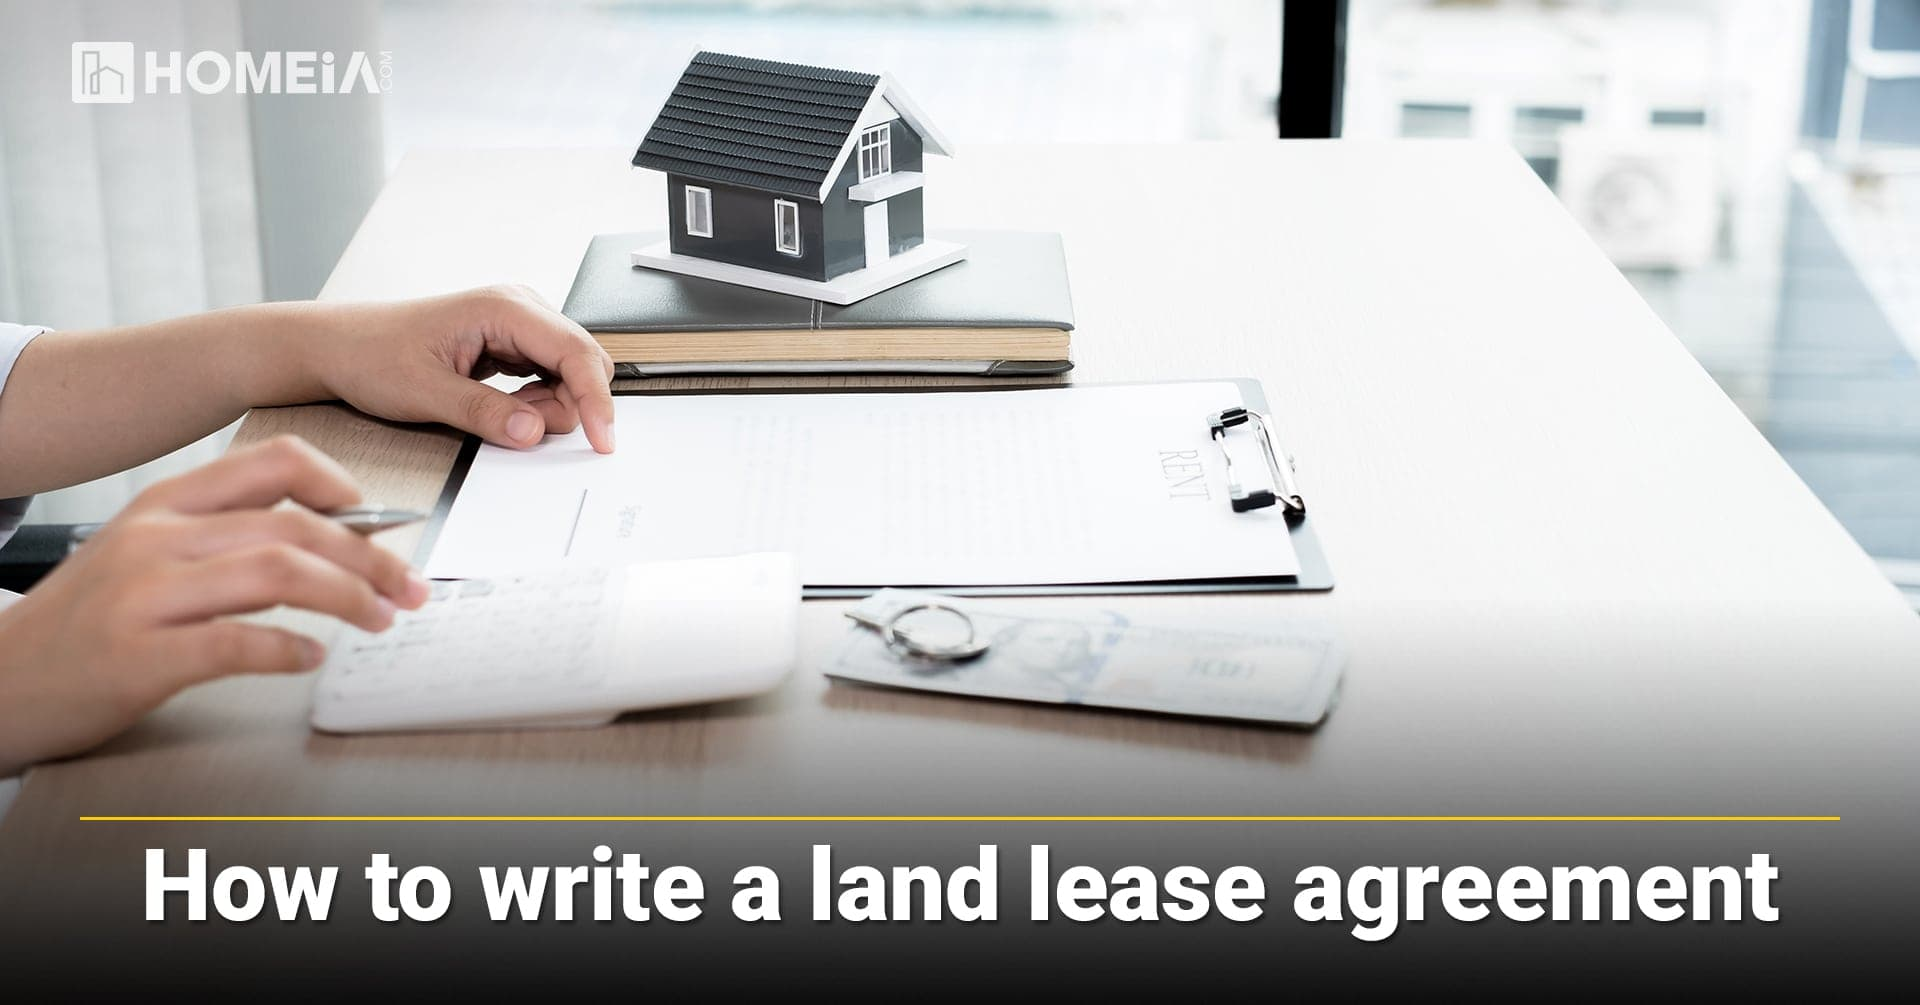 How to write a land lease agreement, what included in the land lease agreement